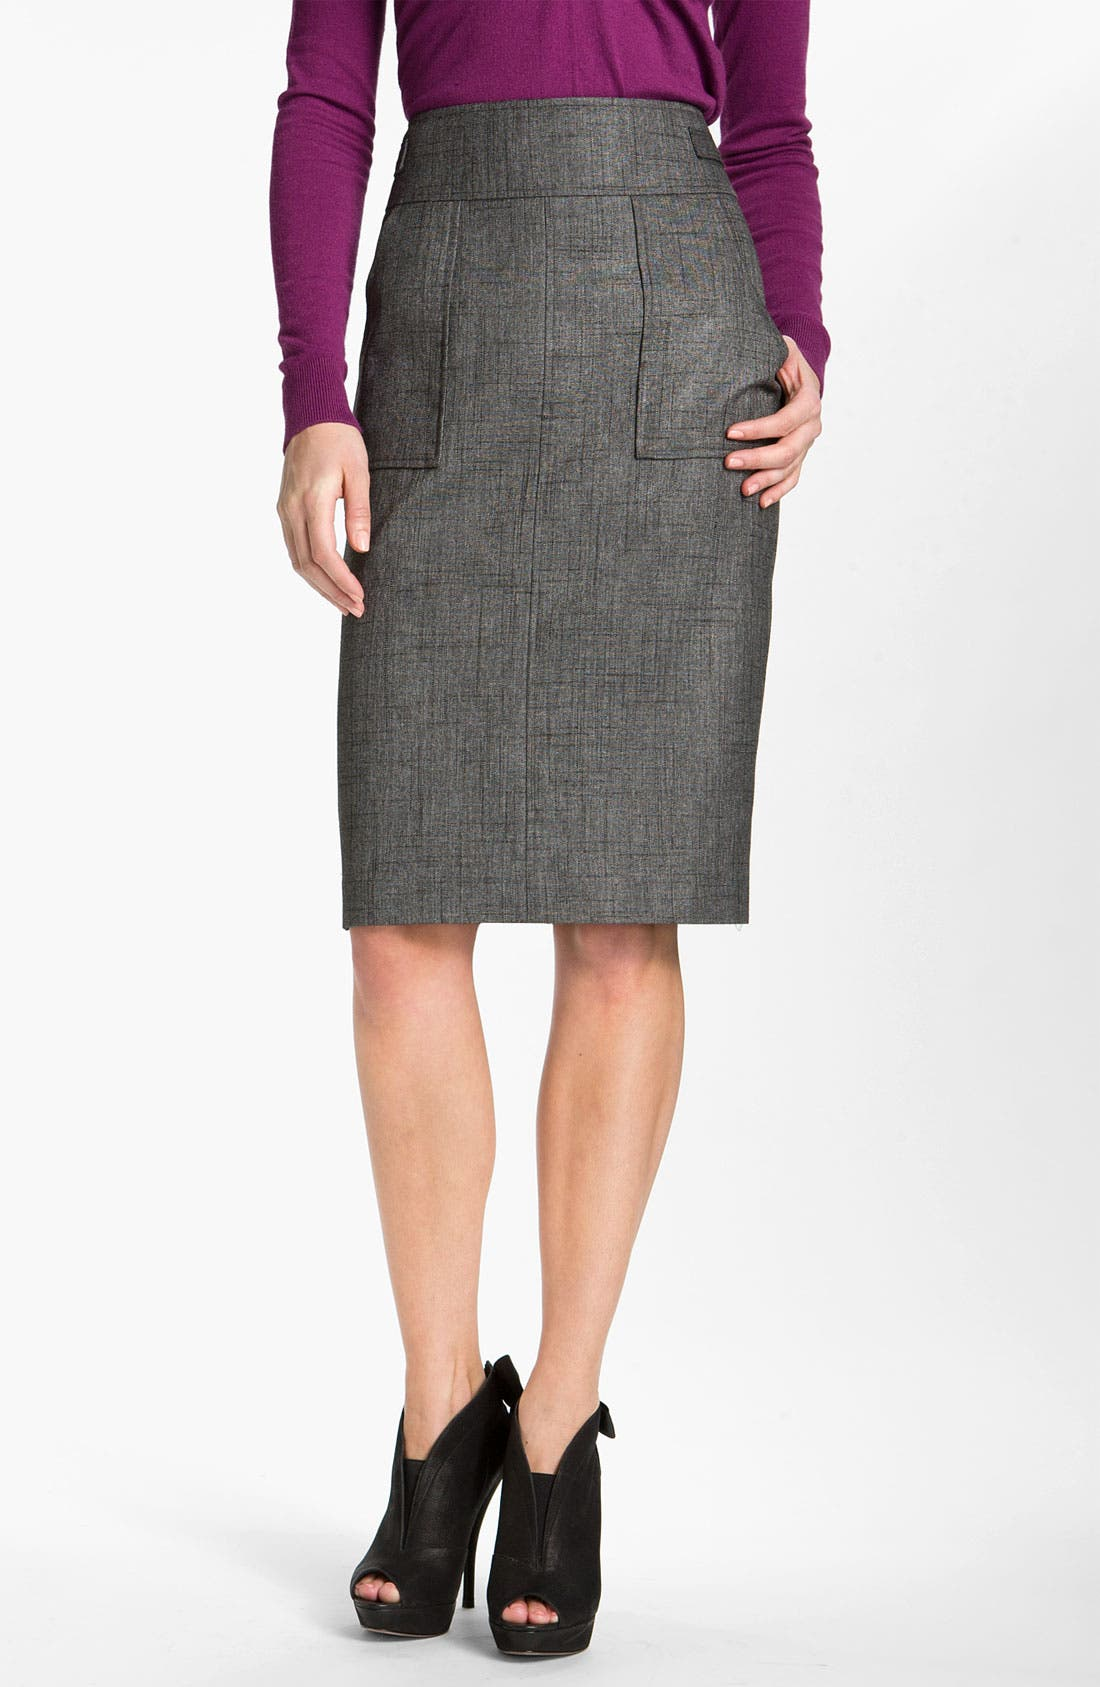 Patch Pocket Pencil Skirt,                             Main thumbnail 1, color,                             001